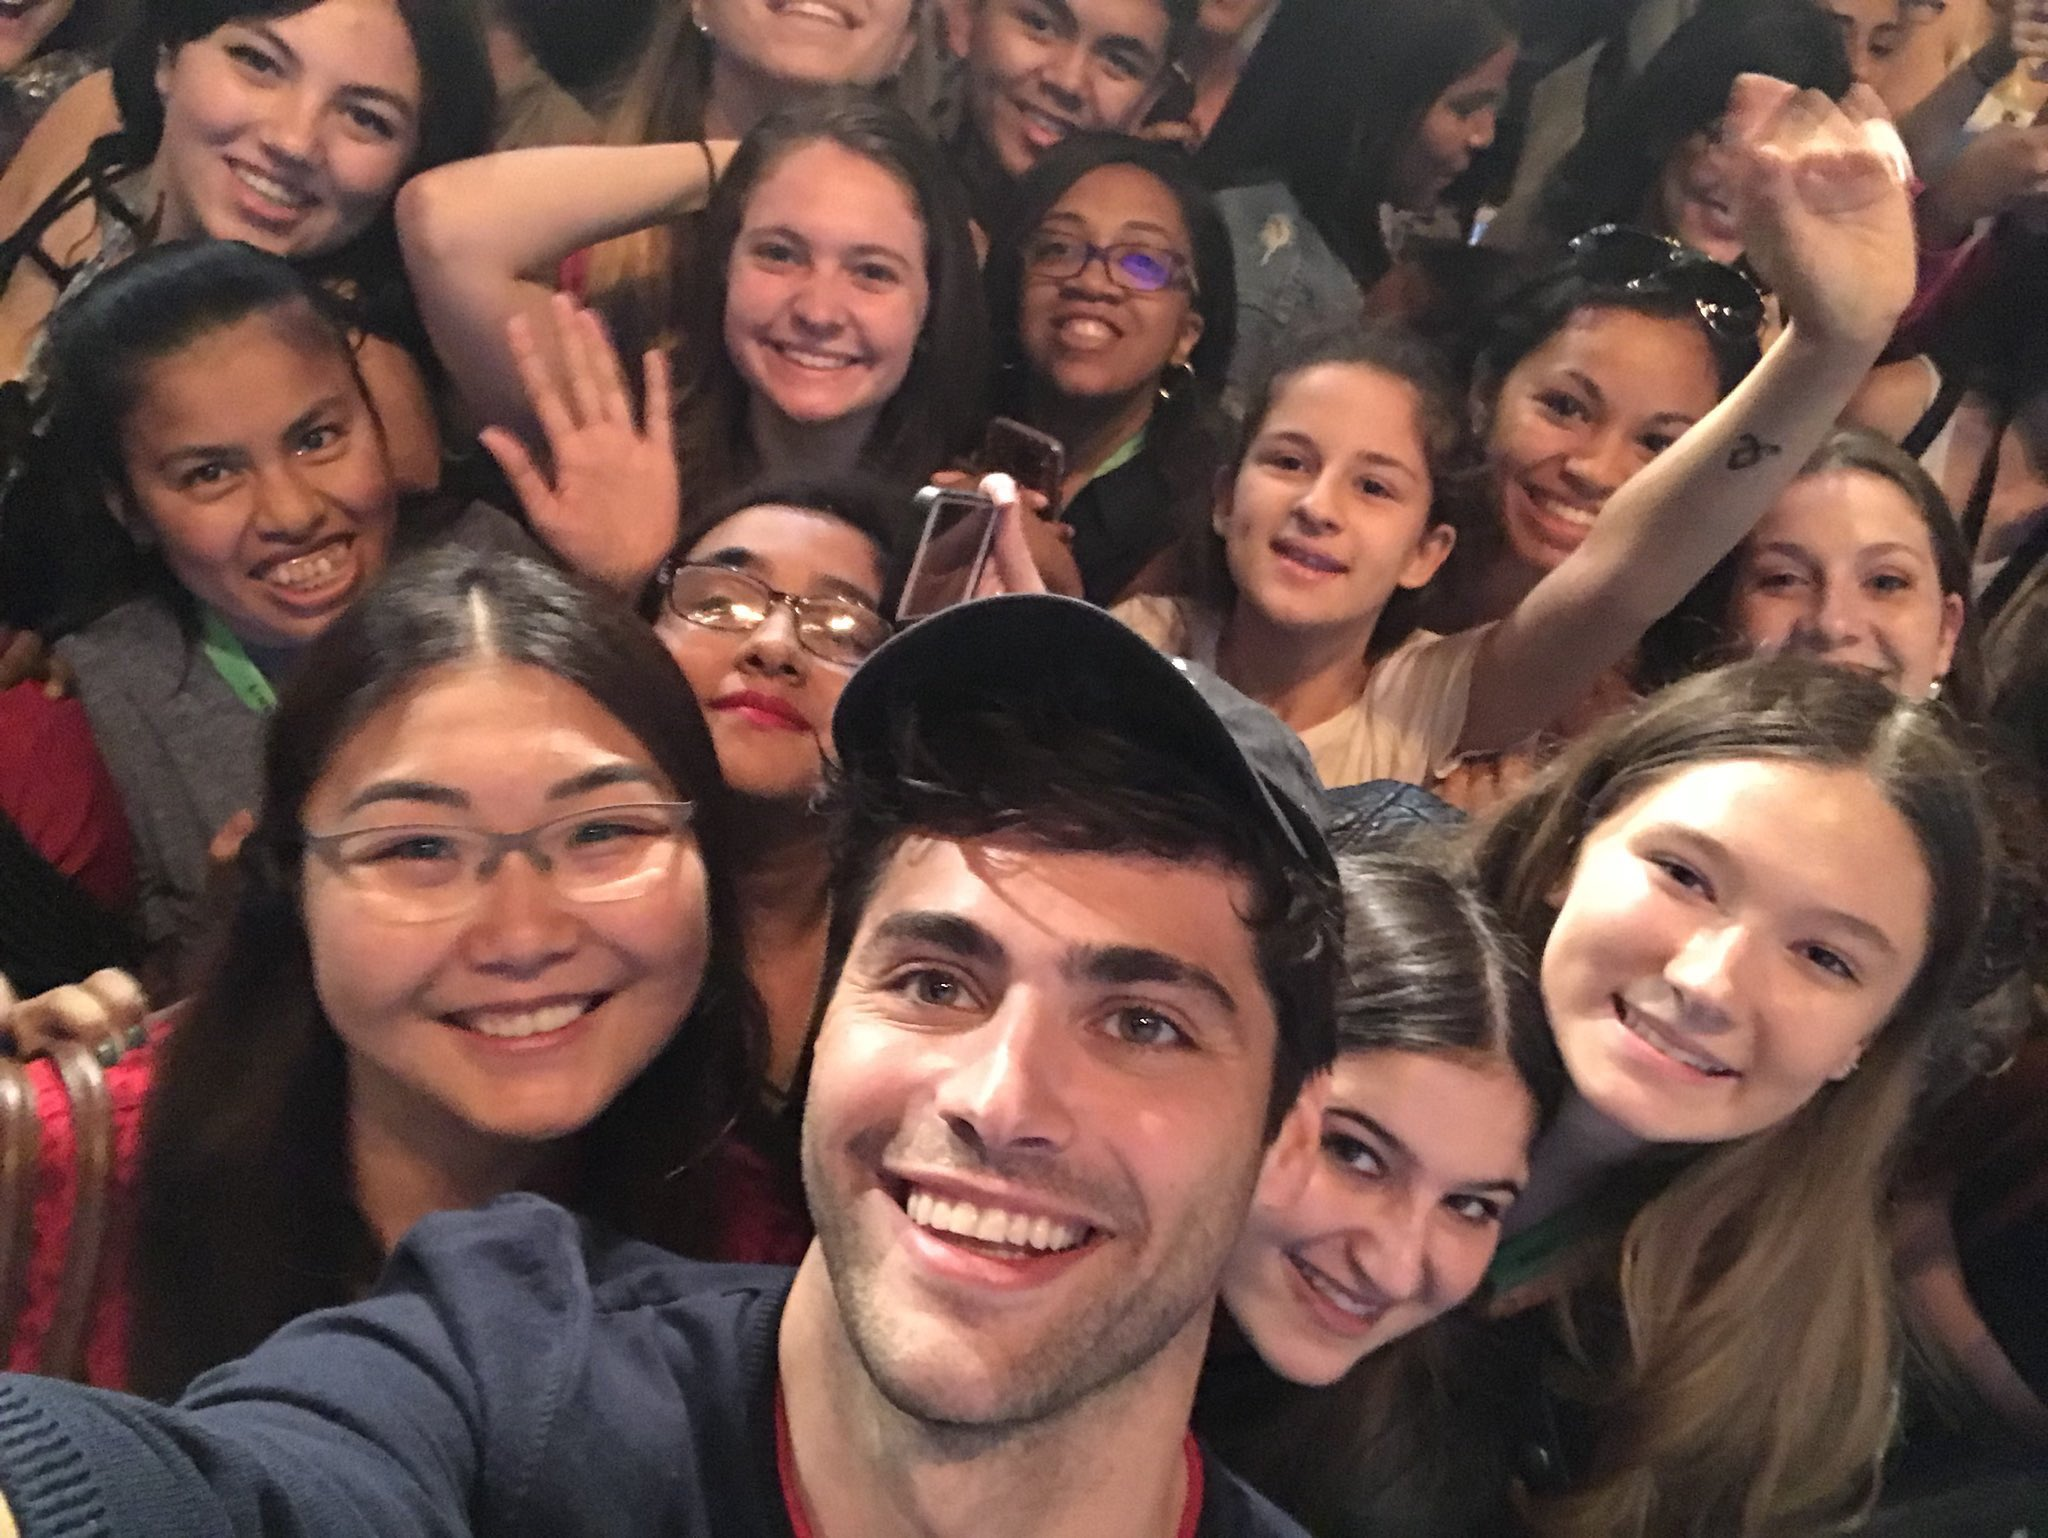 #FANS | Matthew took a selfie with some fans after the panel! #NYCC2017 (via @HoecheStiles) https://t.co/jyXZCnRbRj